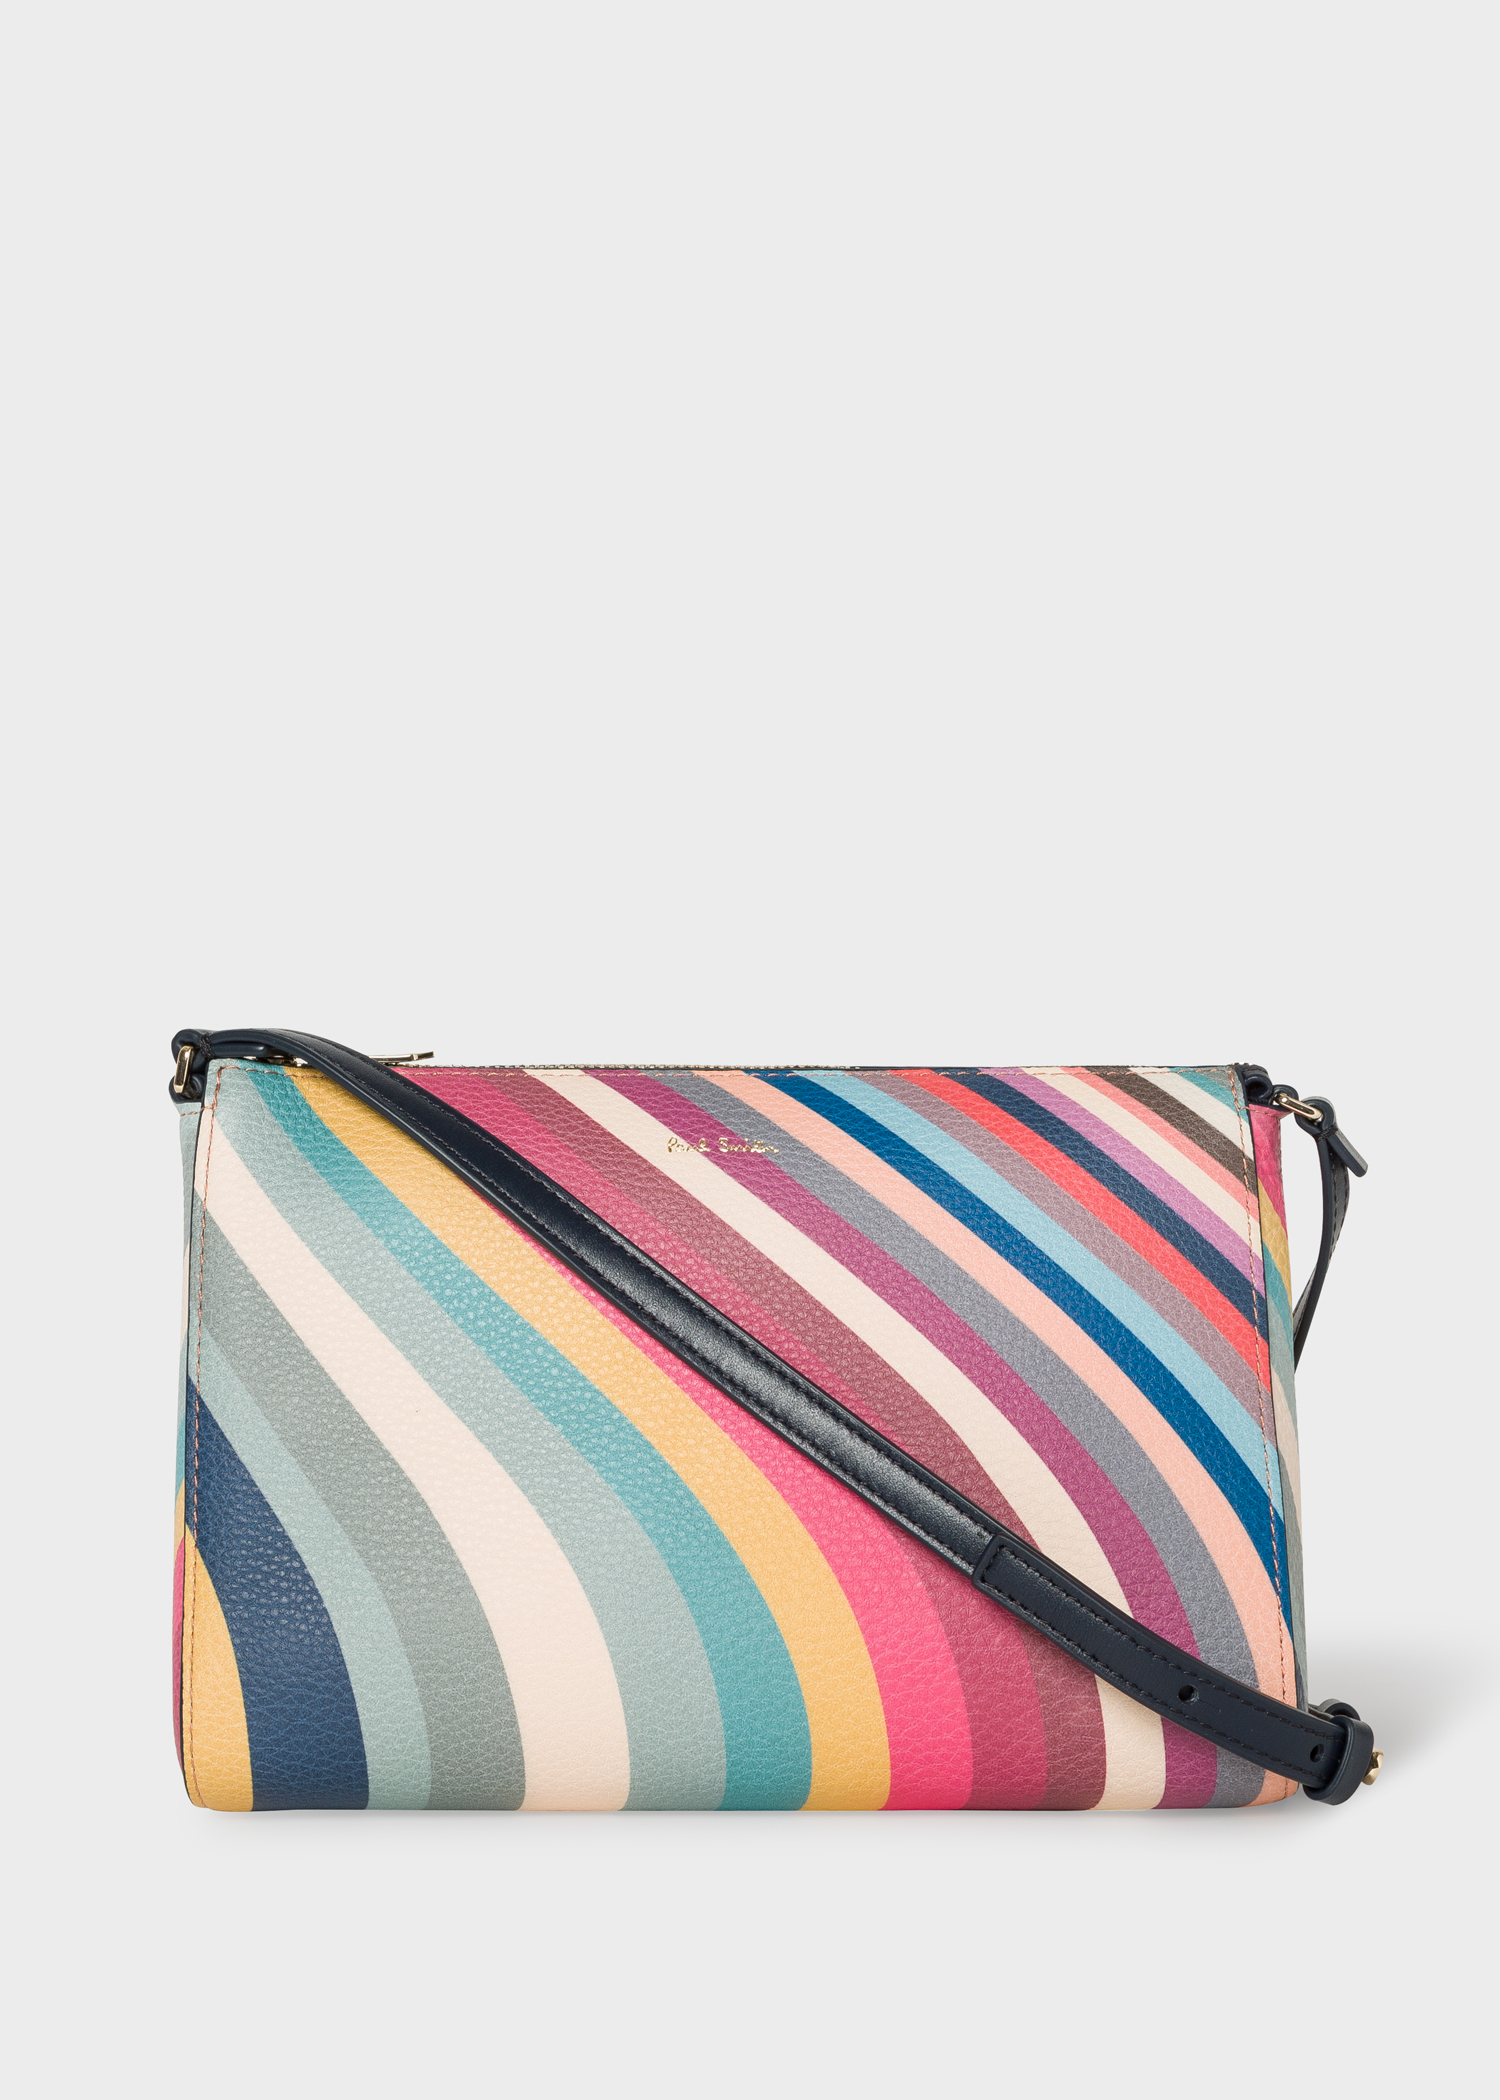 ca3da447 Women's 'Spring Swirl' Print Leather Cross-Body Bag